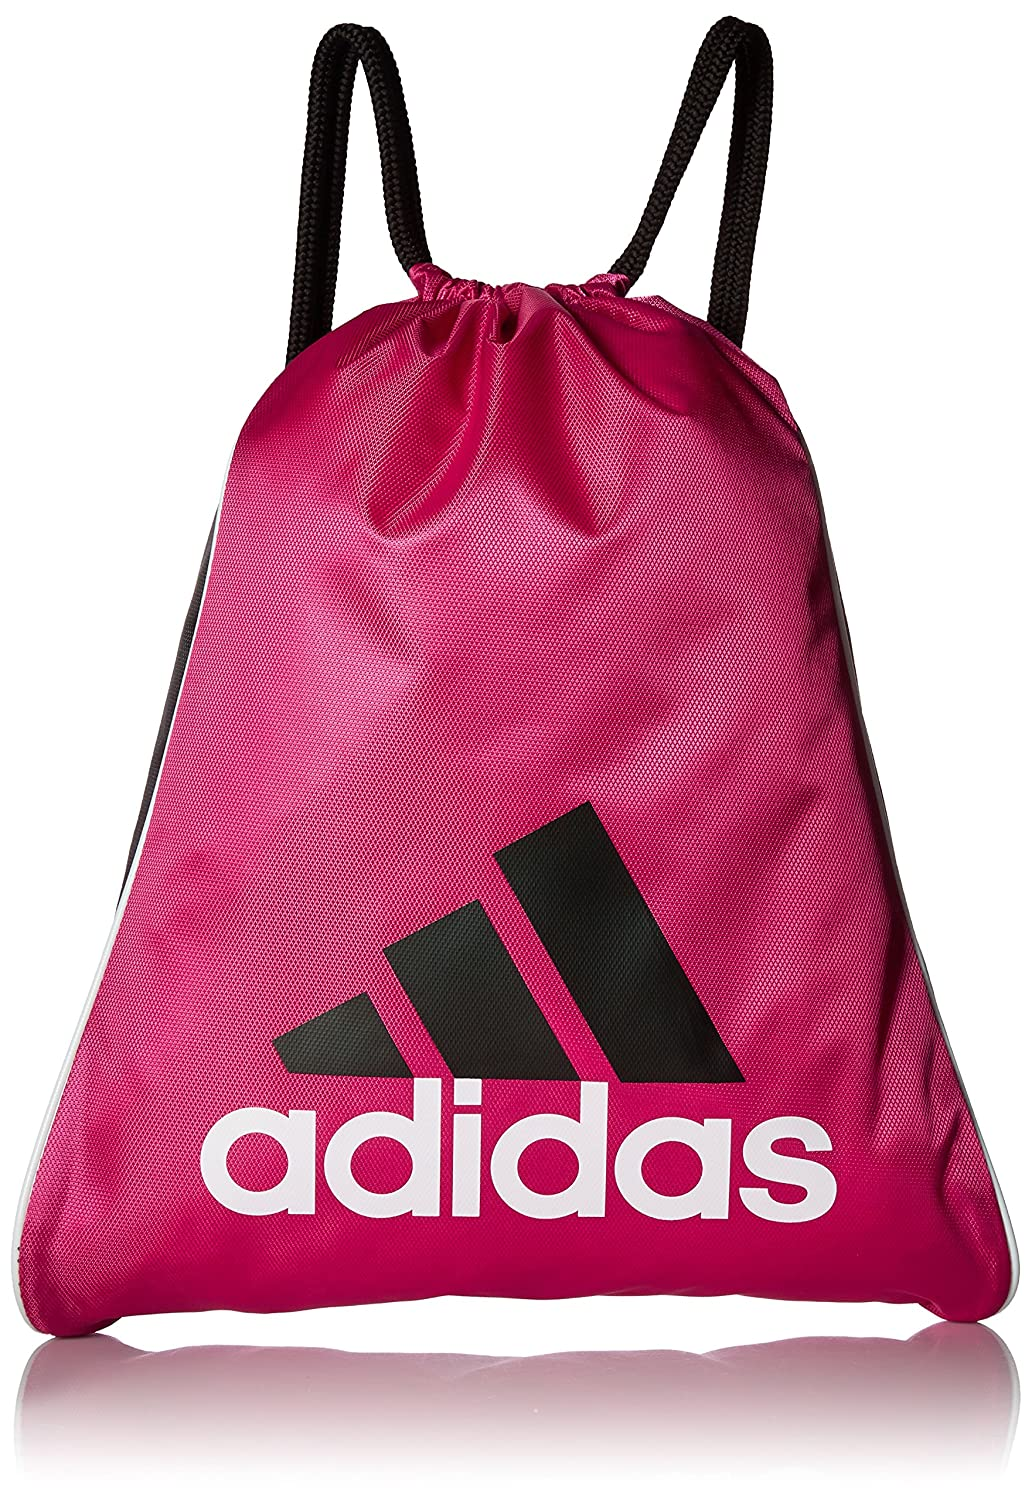 Amazon.com: adidas Burst Sackpack: Sports & Outdoors